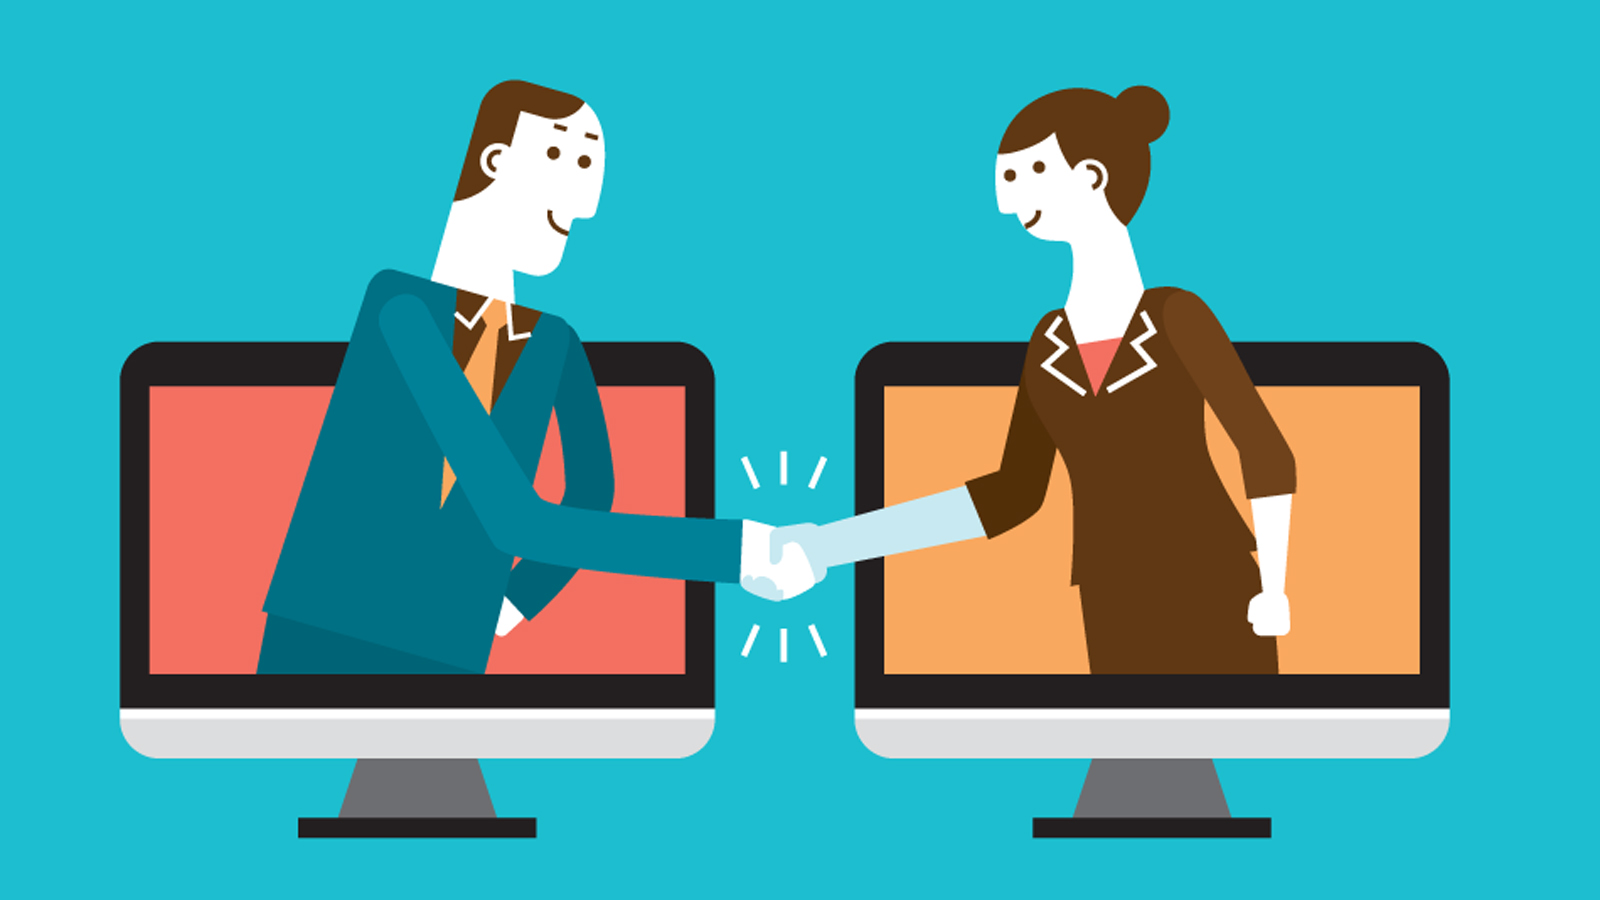 Man coming out of computer shaking hands with woman coming out of computer